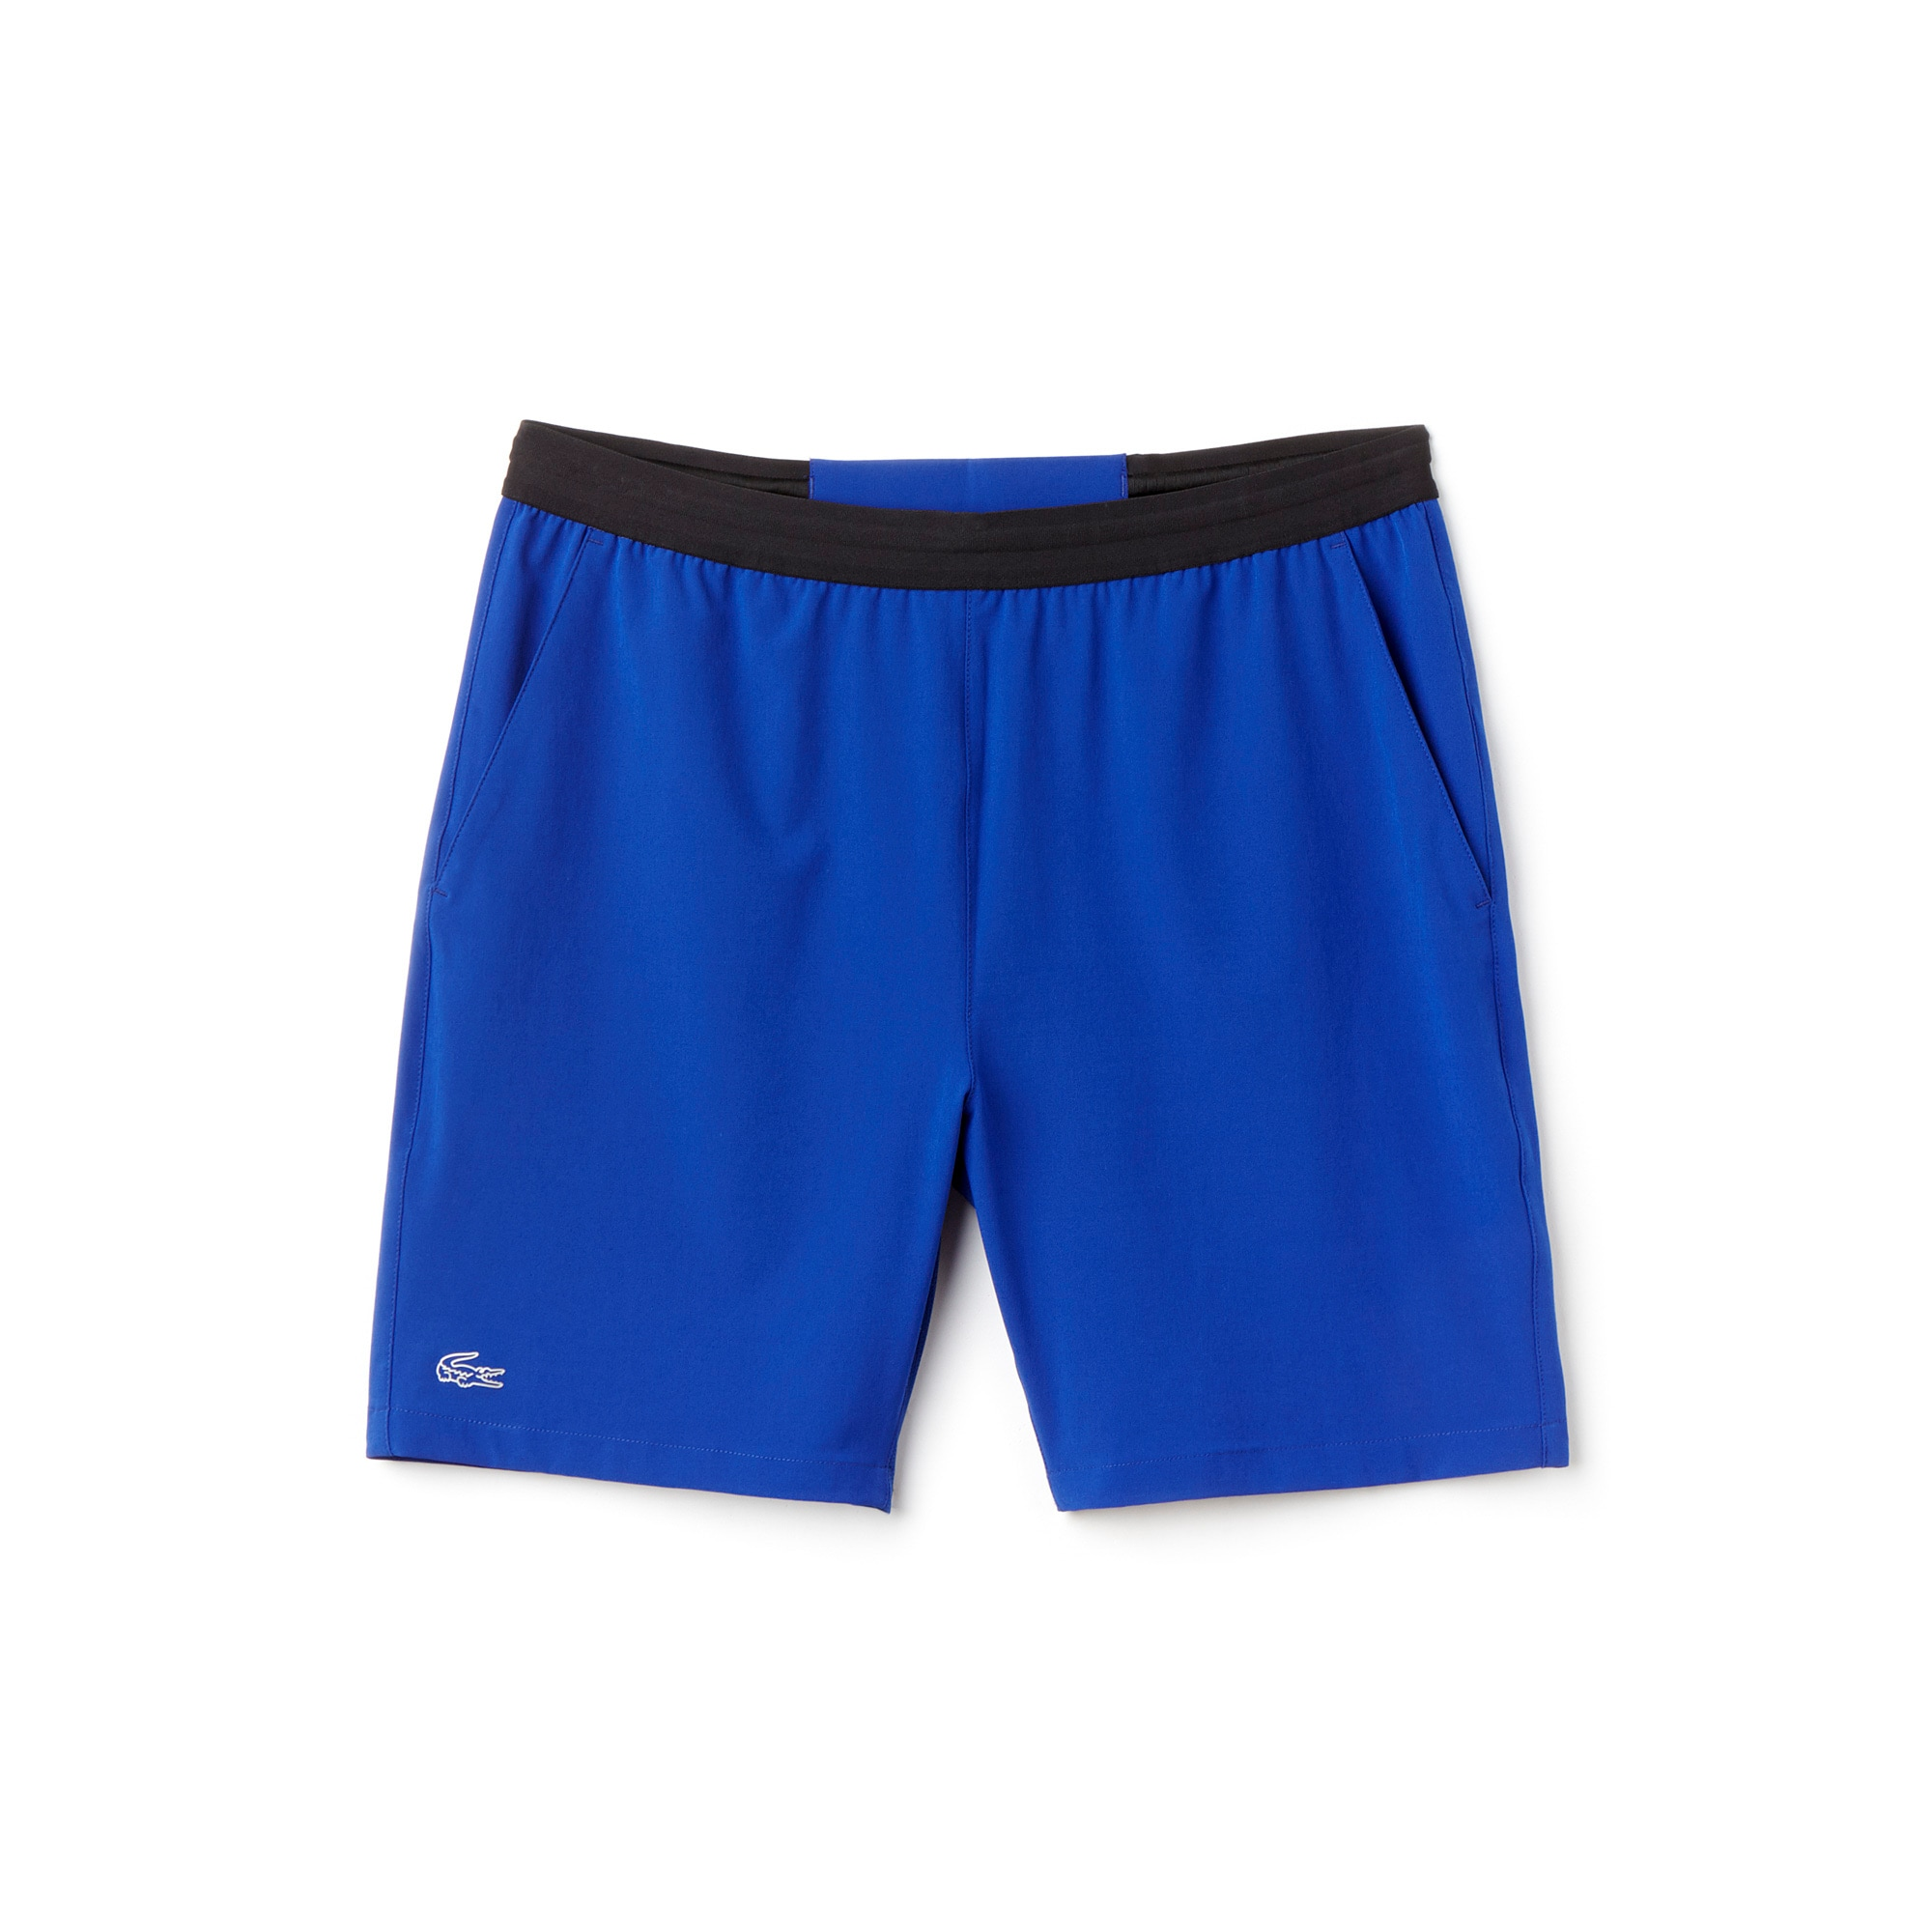 Men's SPORT Contrast Waistband Stretch Tennis Shorts